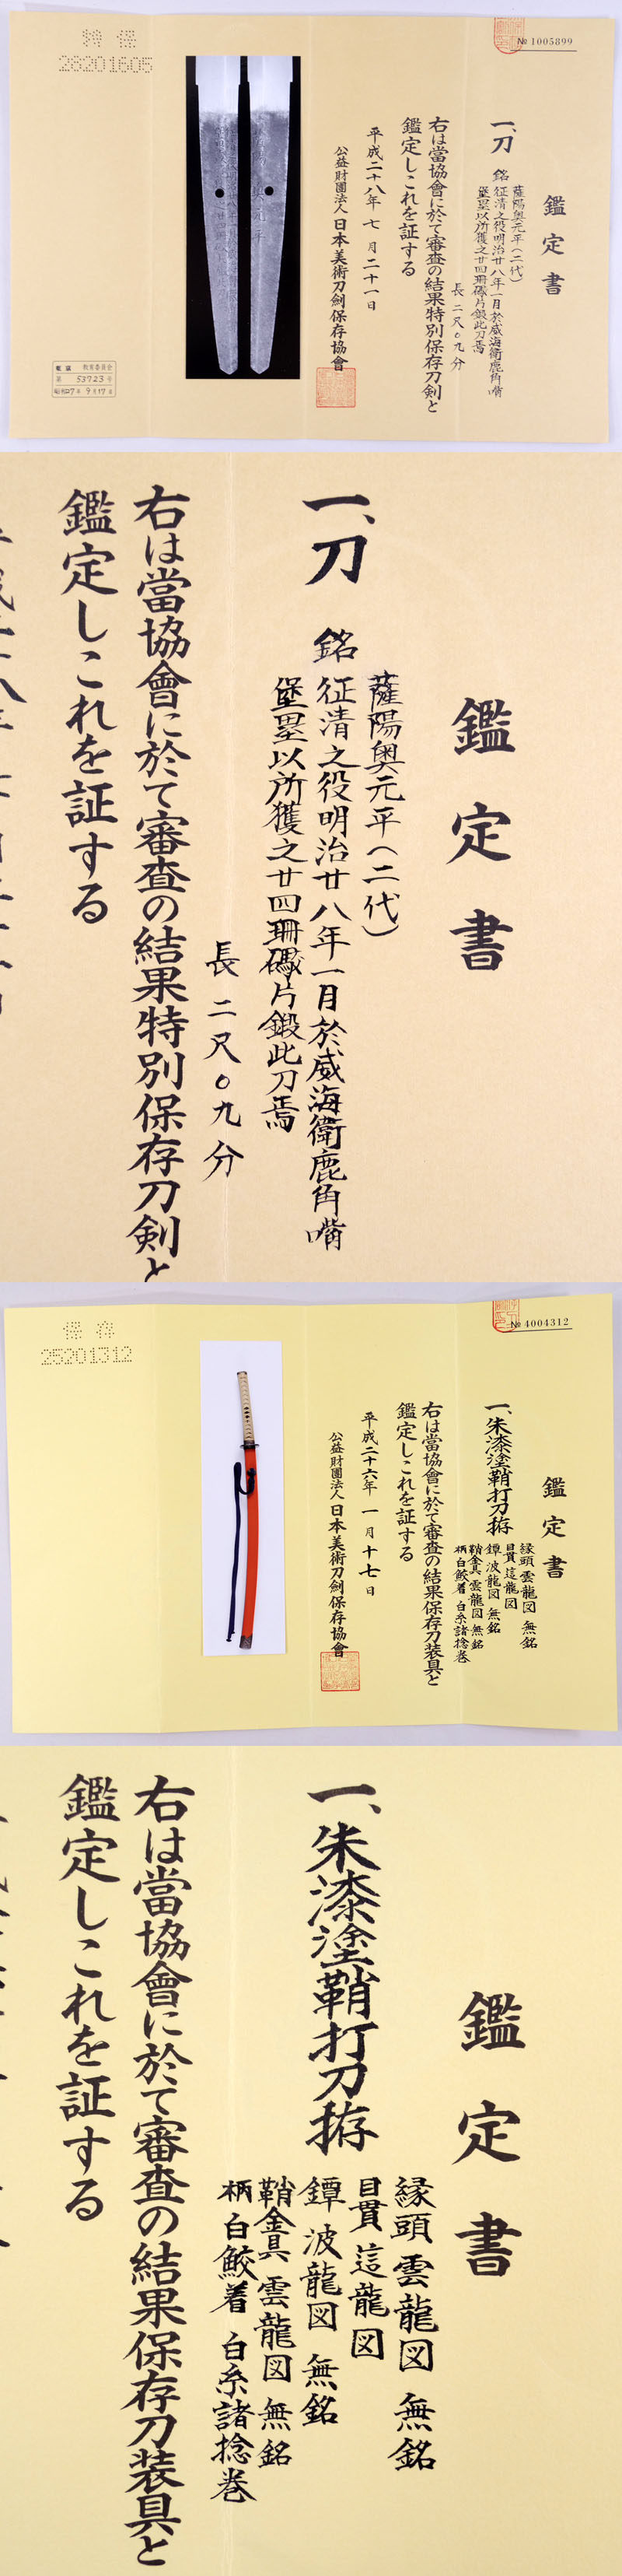 薩陽奥元平(二代)  Picture of Certificate